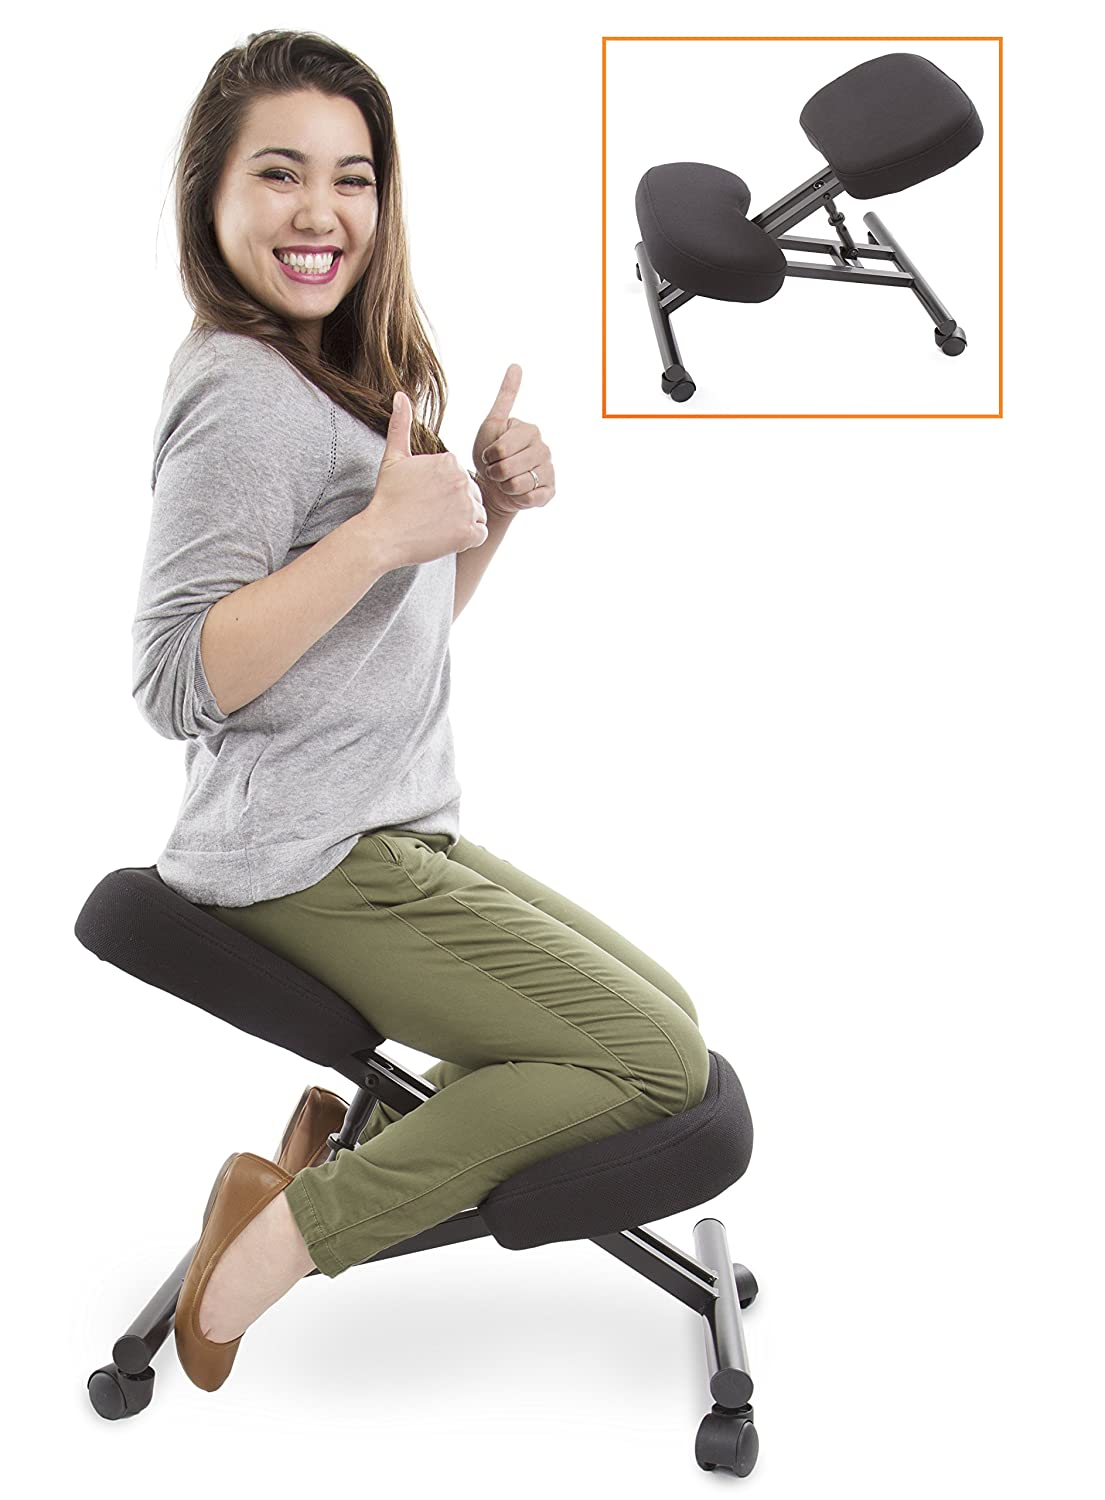 Ergonomic Kneeling Chair From ProErgo - Perfect for Minimizing Neck and Back Pain